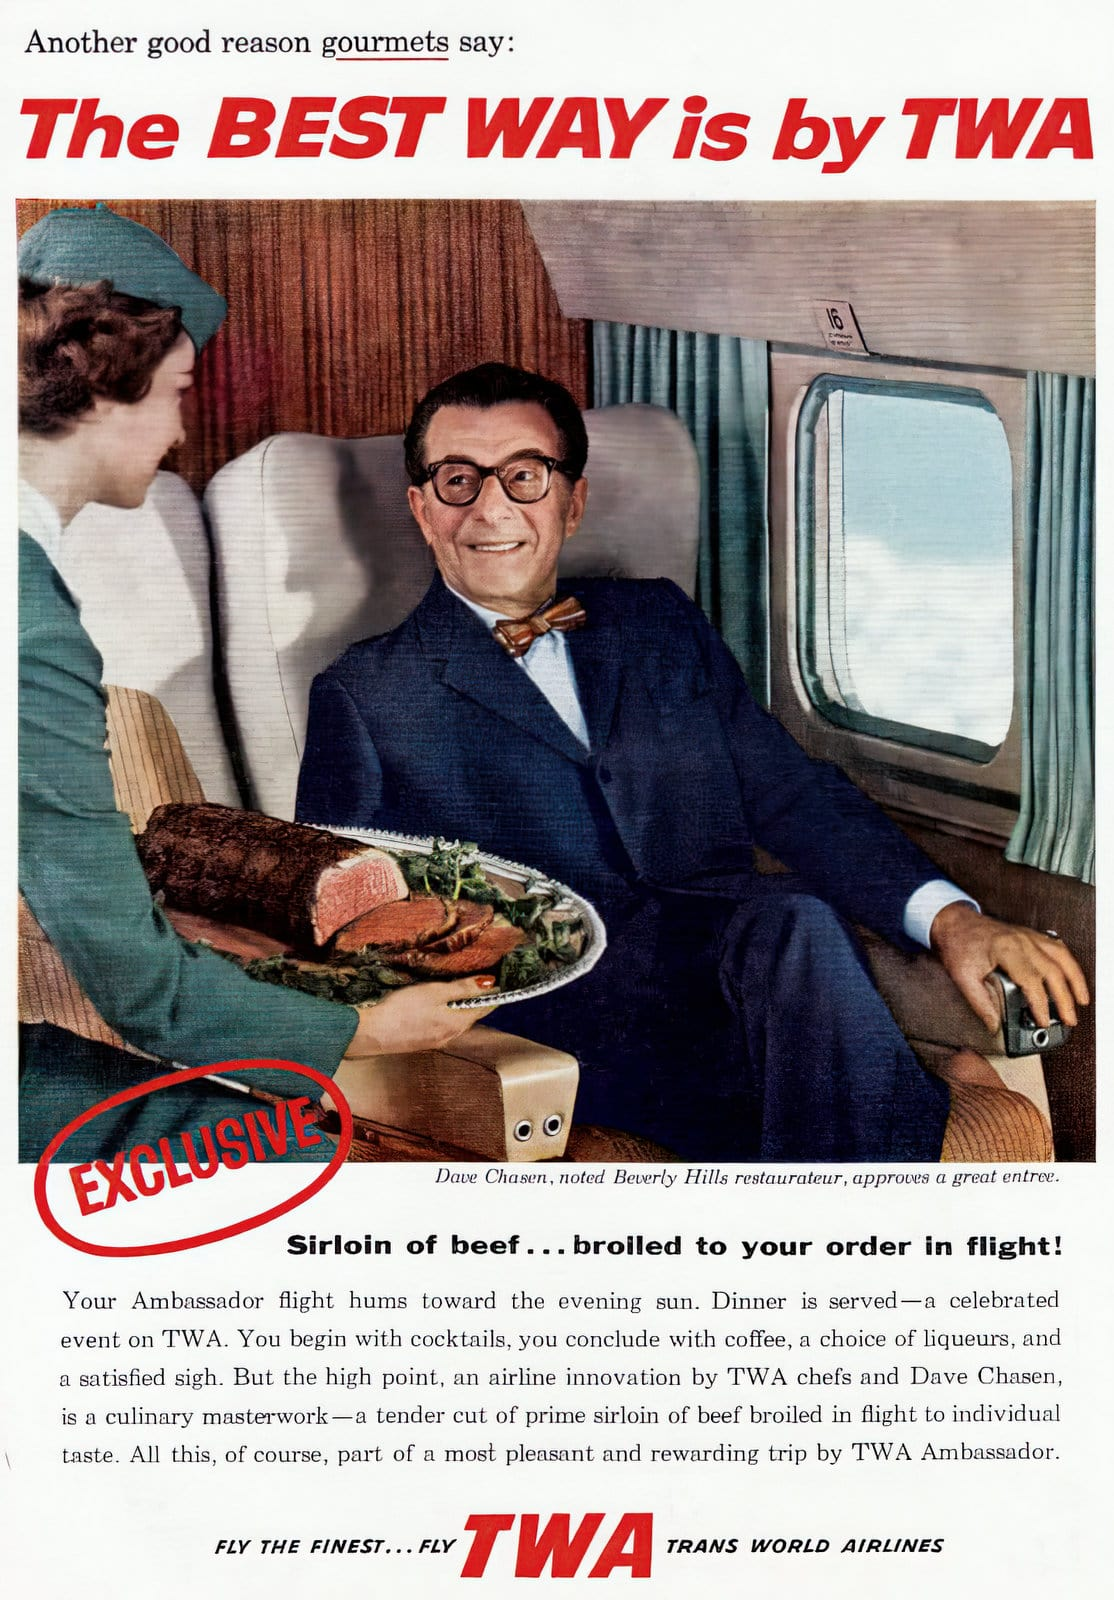 Beef dinner on TWA plane - in-flight meal from the 1950s